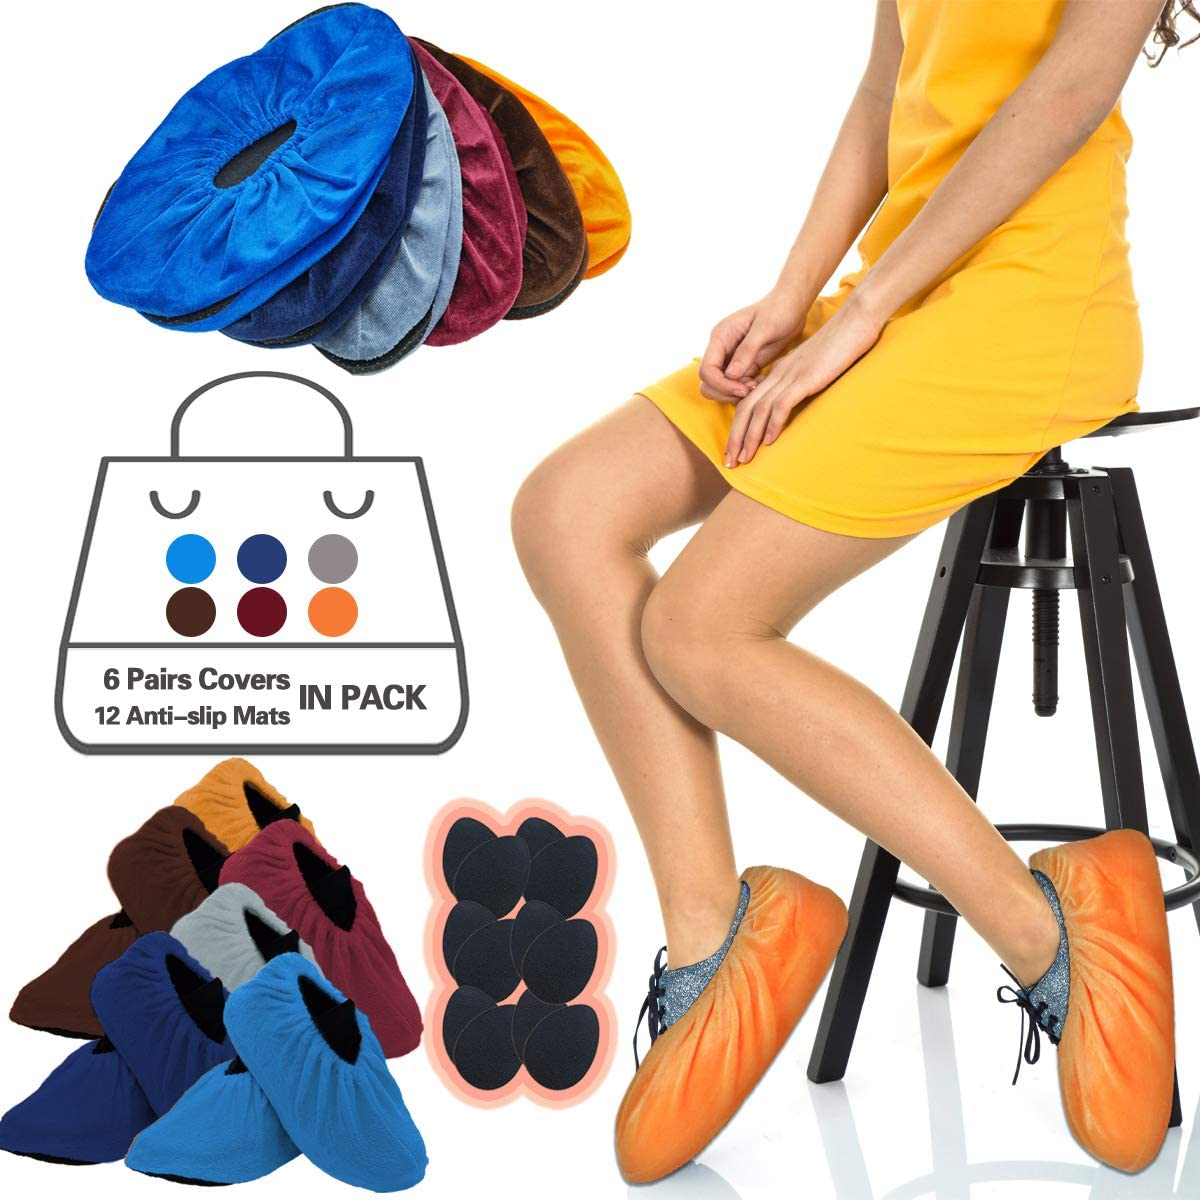 6 Pairs Shoe Covers Washable Reusable Non Slip,Shoe Protectors Covers,Durable Boot & Shoes Cover For Construction Workplace Carpet,One Size Fits Most.With Foot Bottom Anti-slip Mat(6-14 US size)